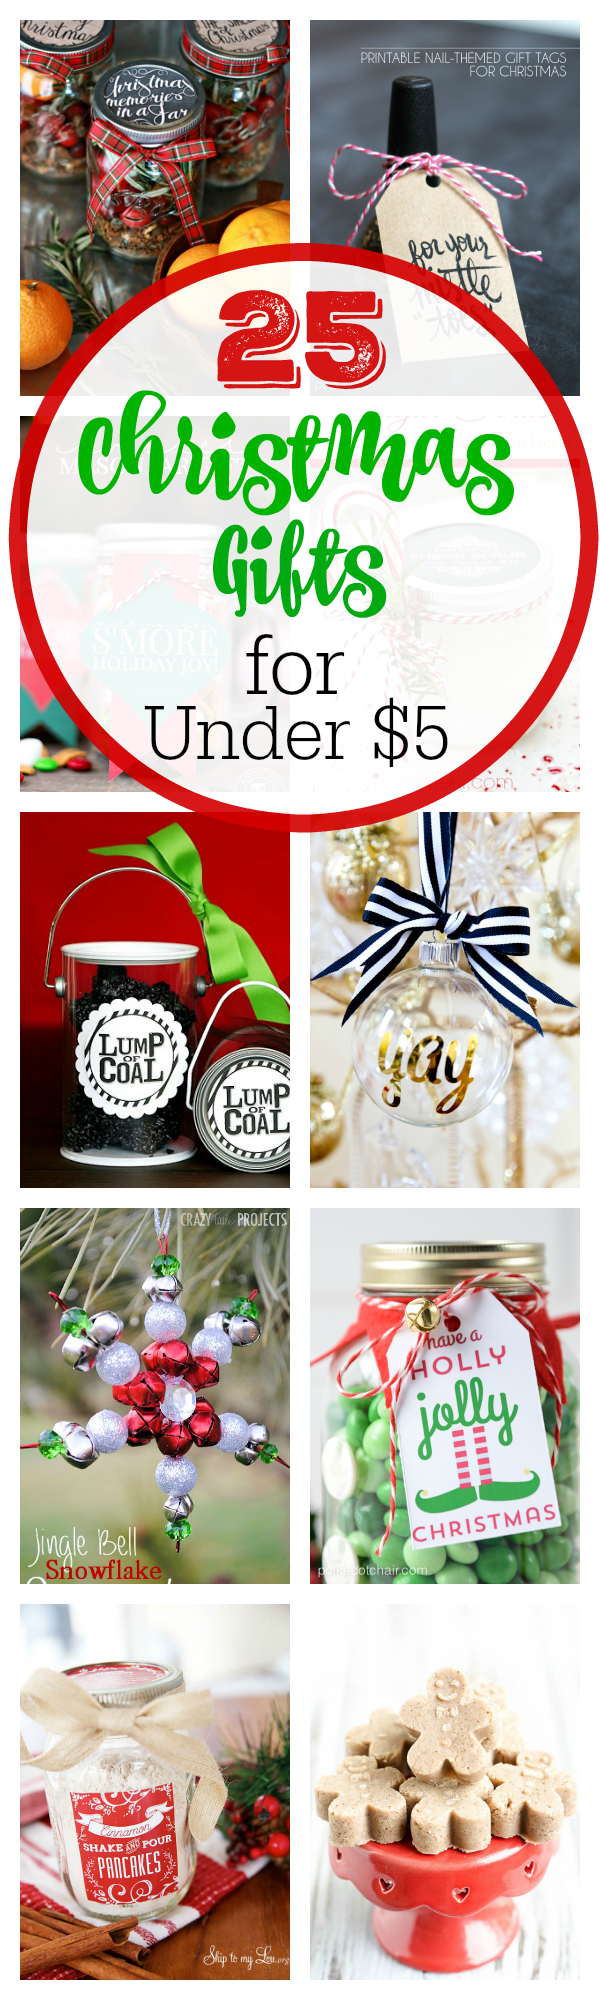 Christmas Gifts For Coworkers.25 Cheap Gifts For Christmas Under 5 Crazy Little Projects